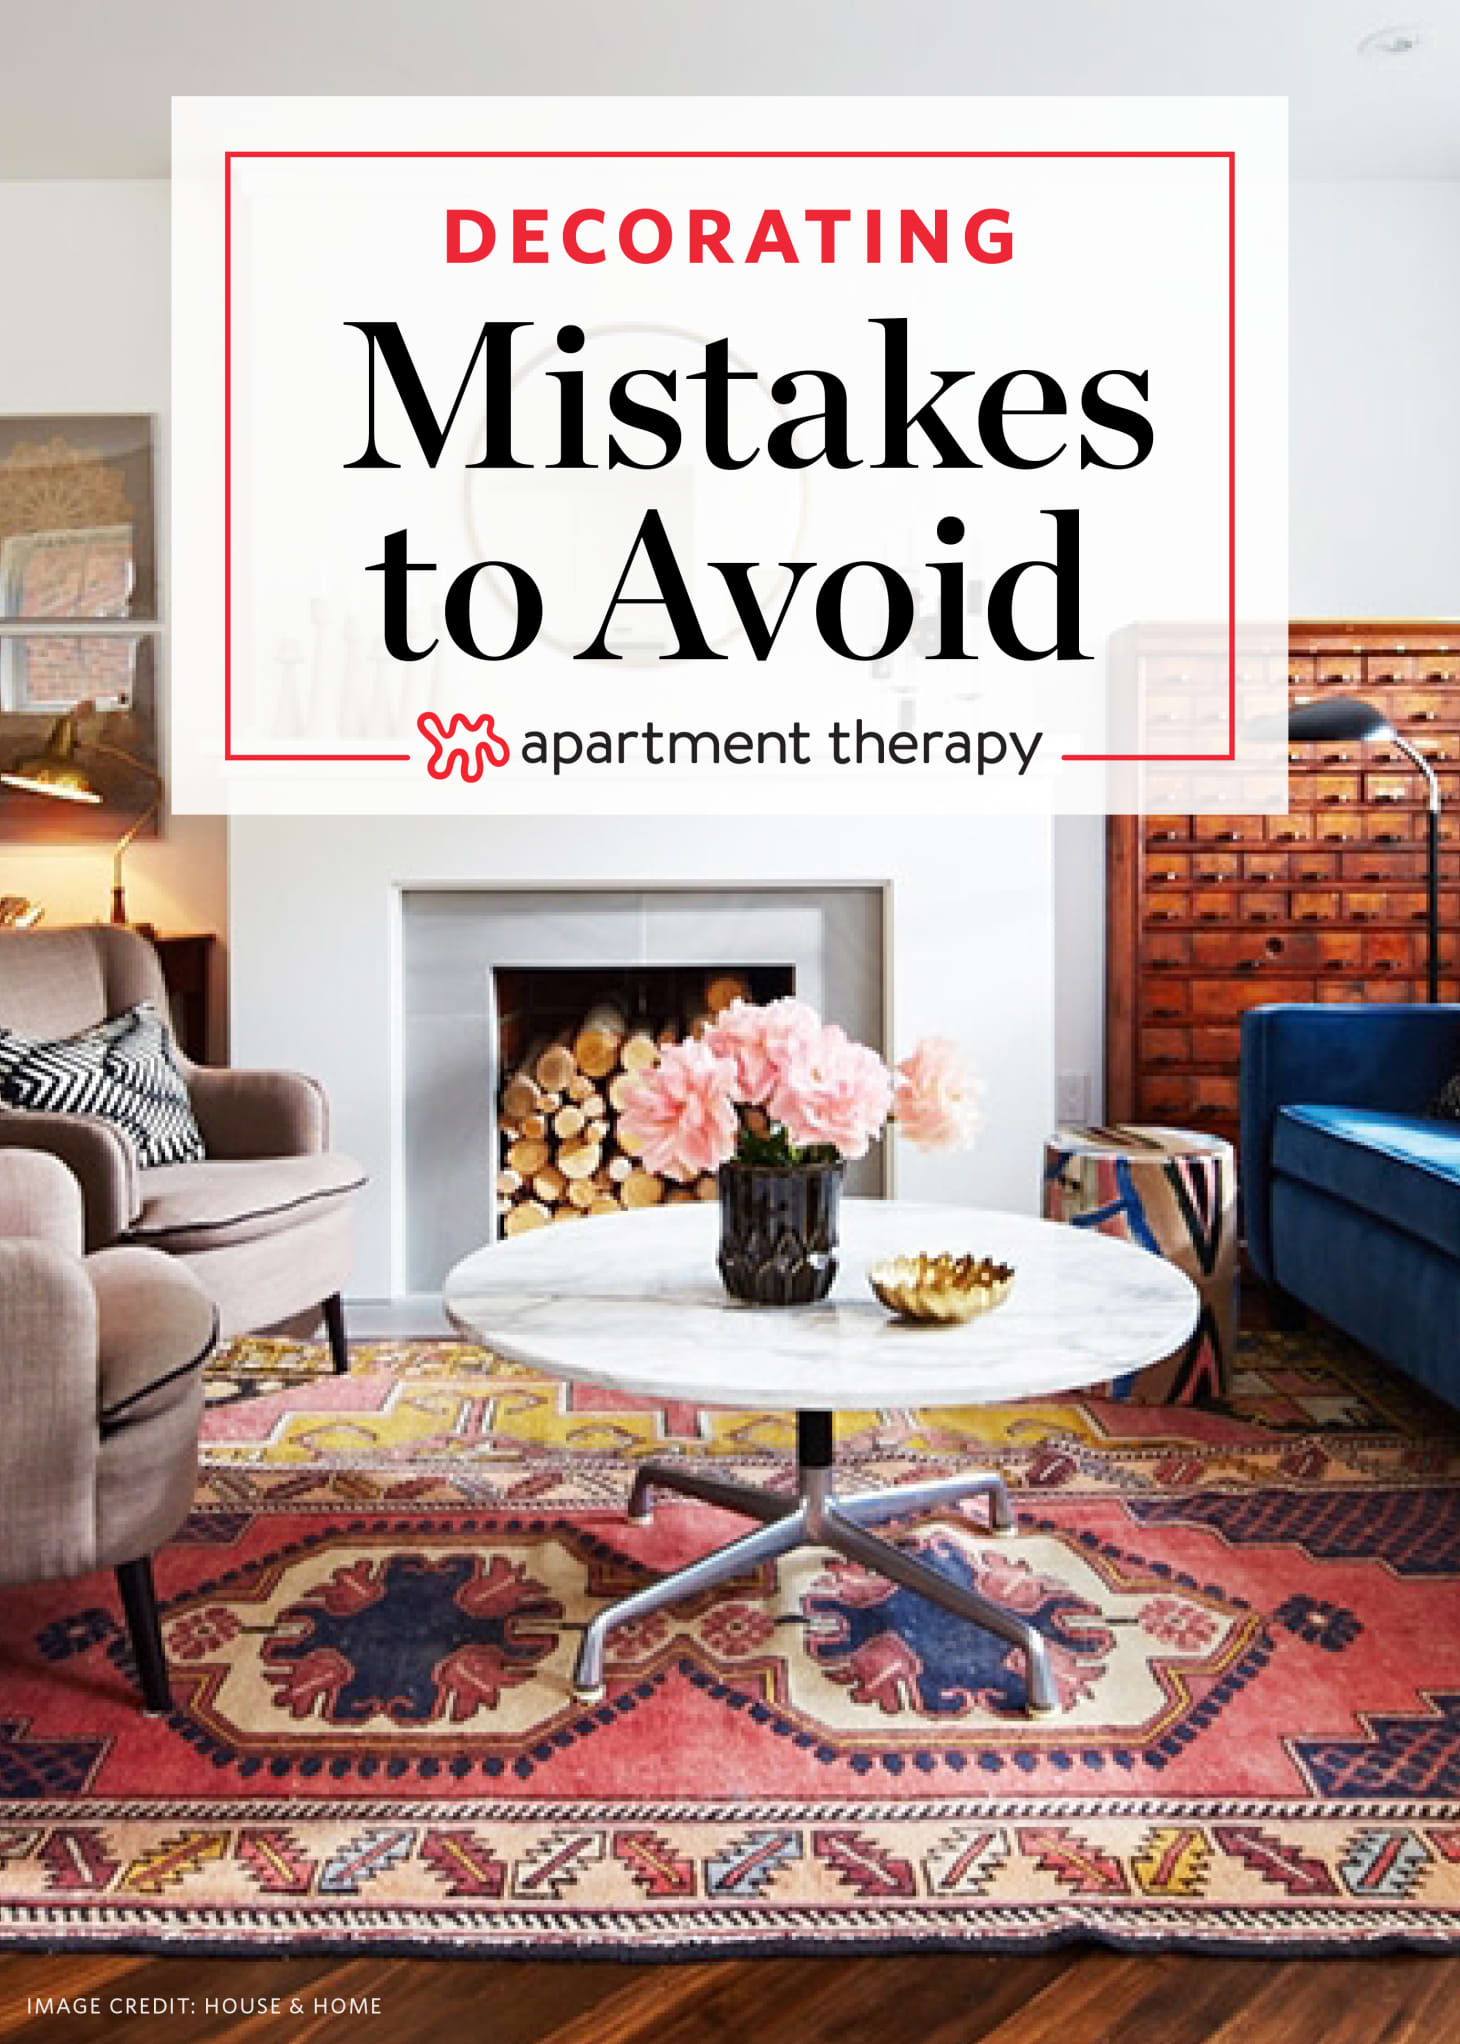 Phenomenal Decorating Mistakes To Avoid Apartment Therapy Download Free Architecture Designs Sospemadebymaigaardcom